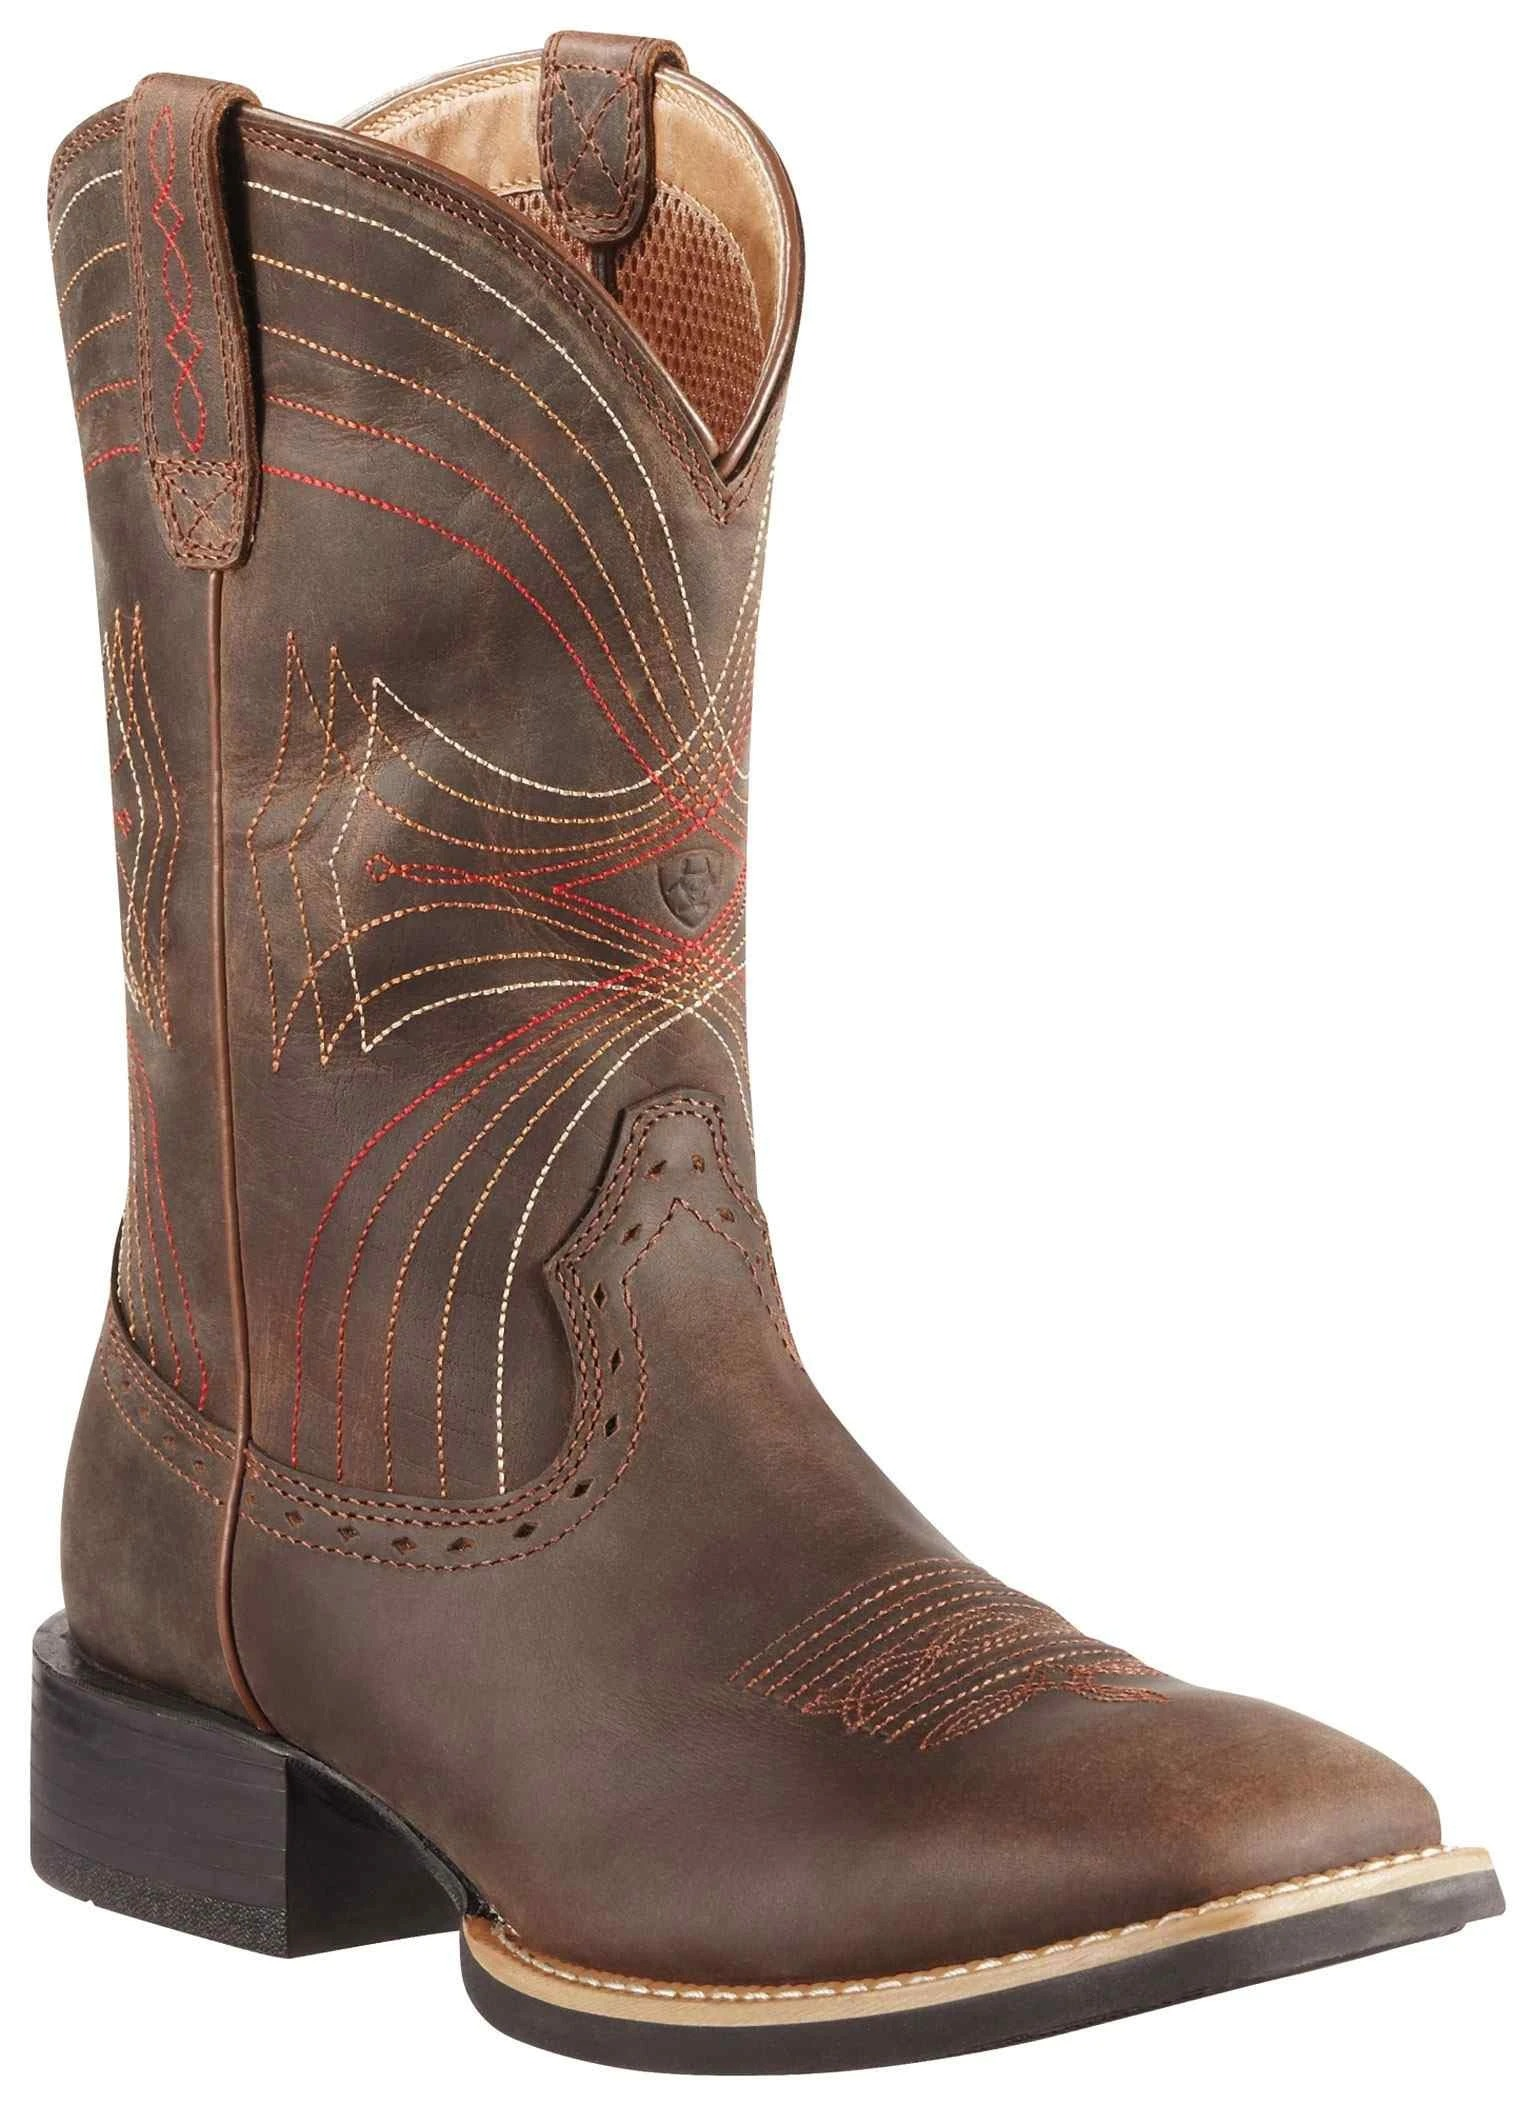 Ariat Men's Sport Wide Square Toe Distressed Brown Western Boots